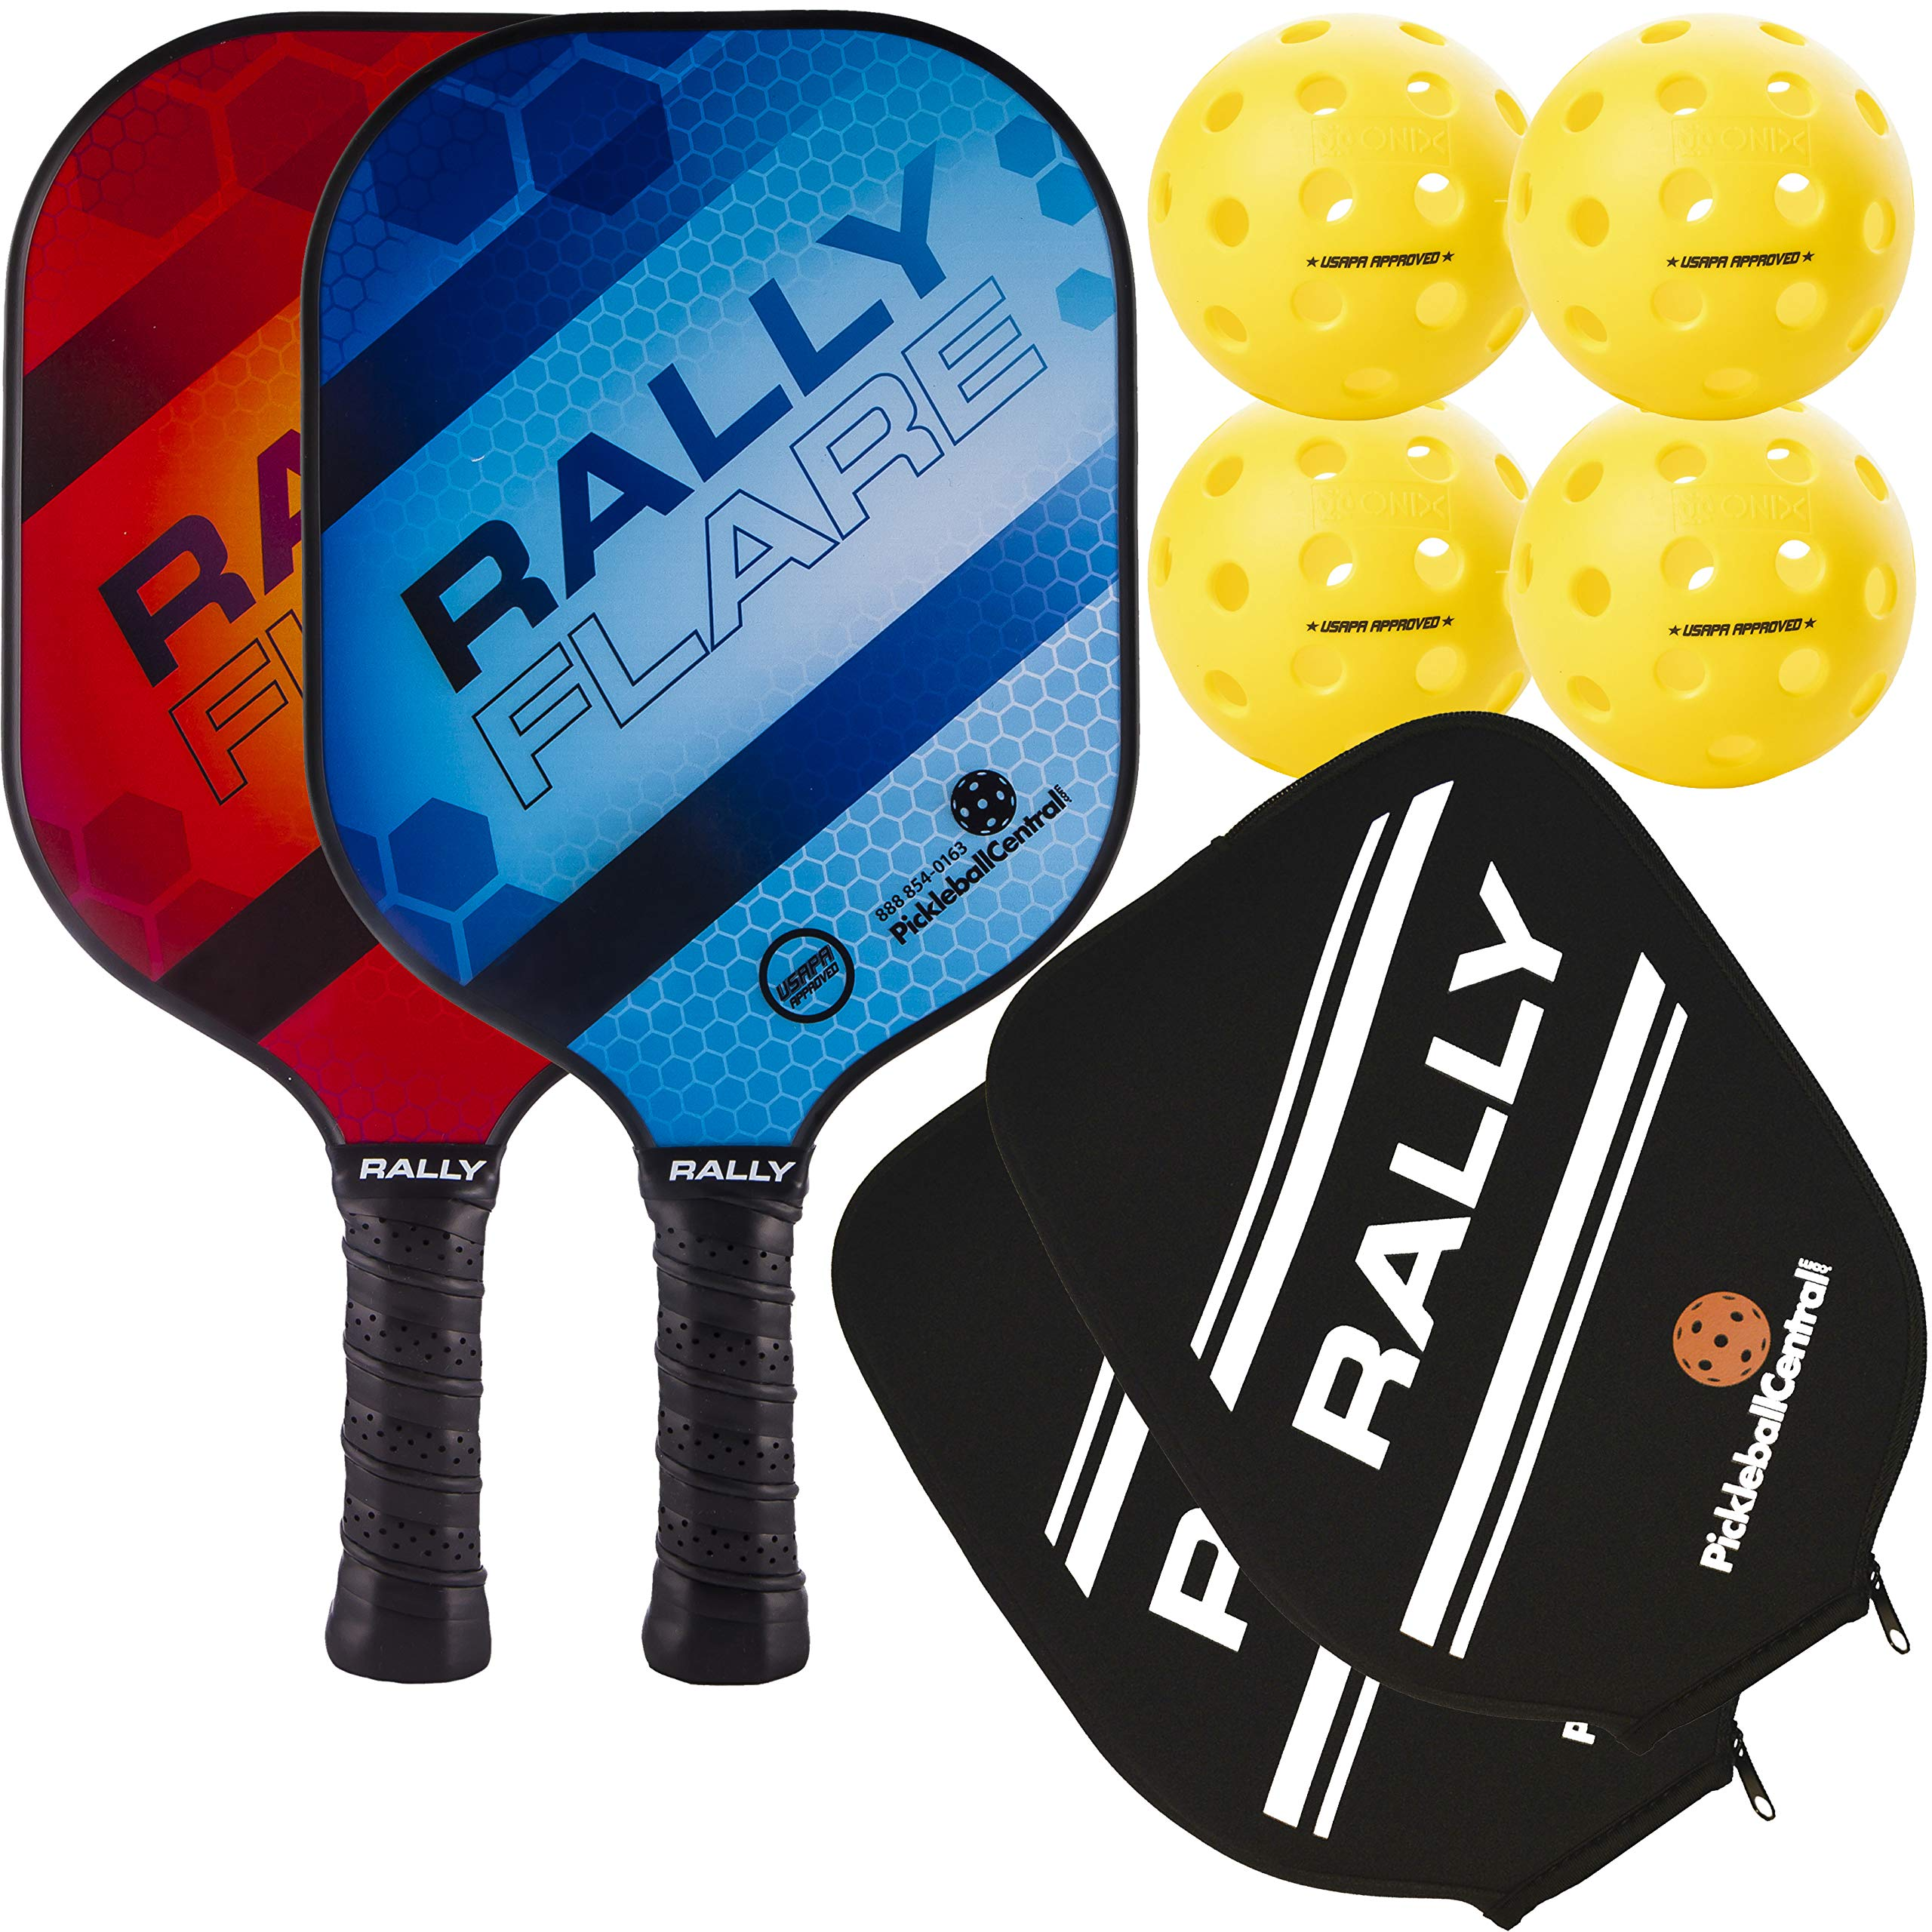 Rally Flare Graphite Pickleball Paddle | Polymer Honeycomb Core, Graphite Hybrid Composite Face | Lightweight | Paddle Cover Included (2-Pack Blue/Red) by PickleballCentral